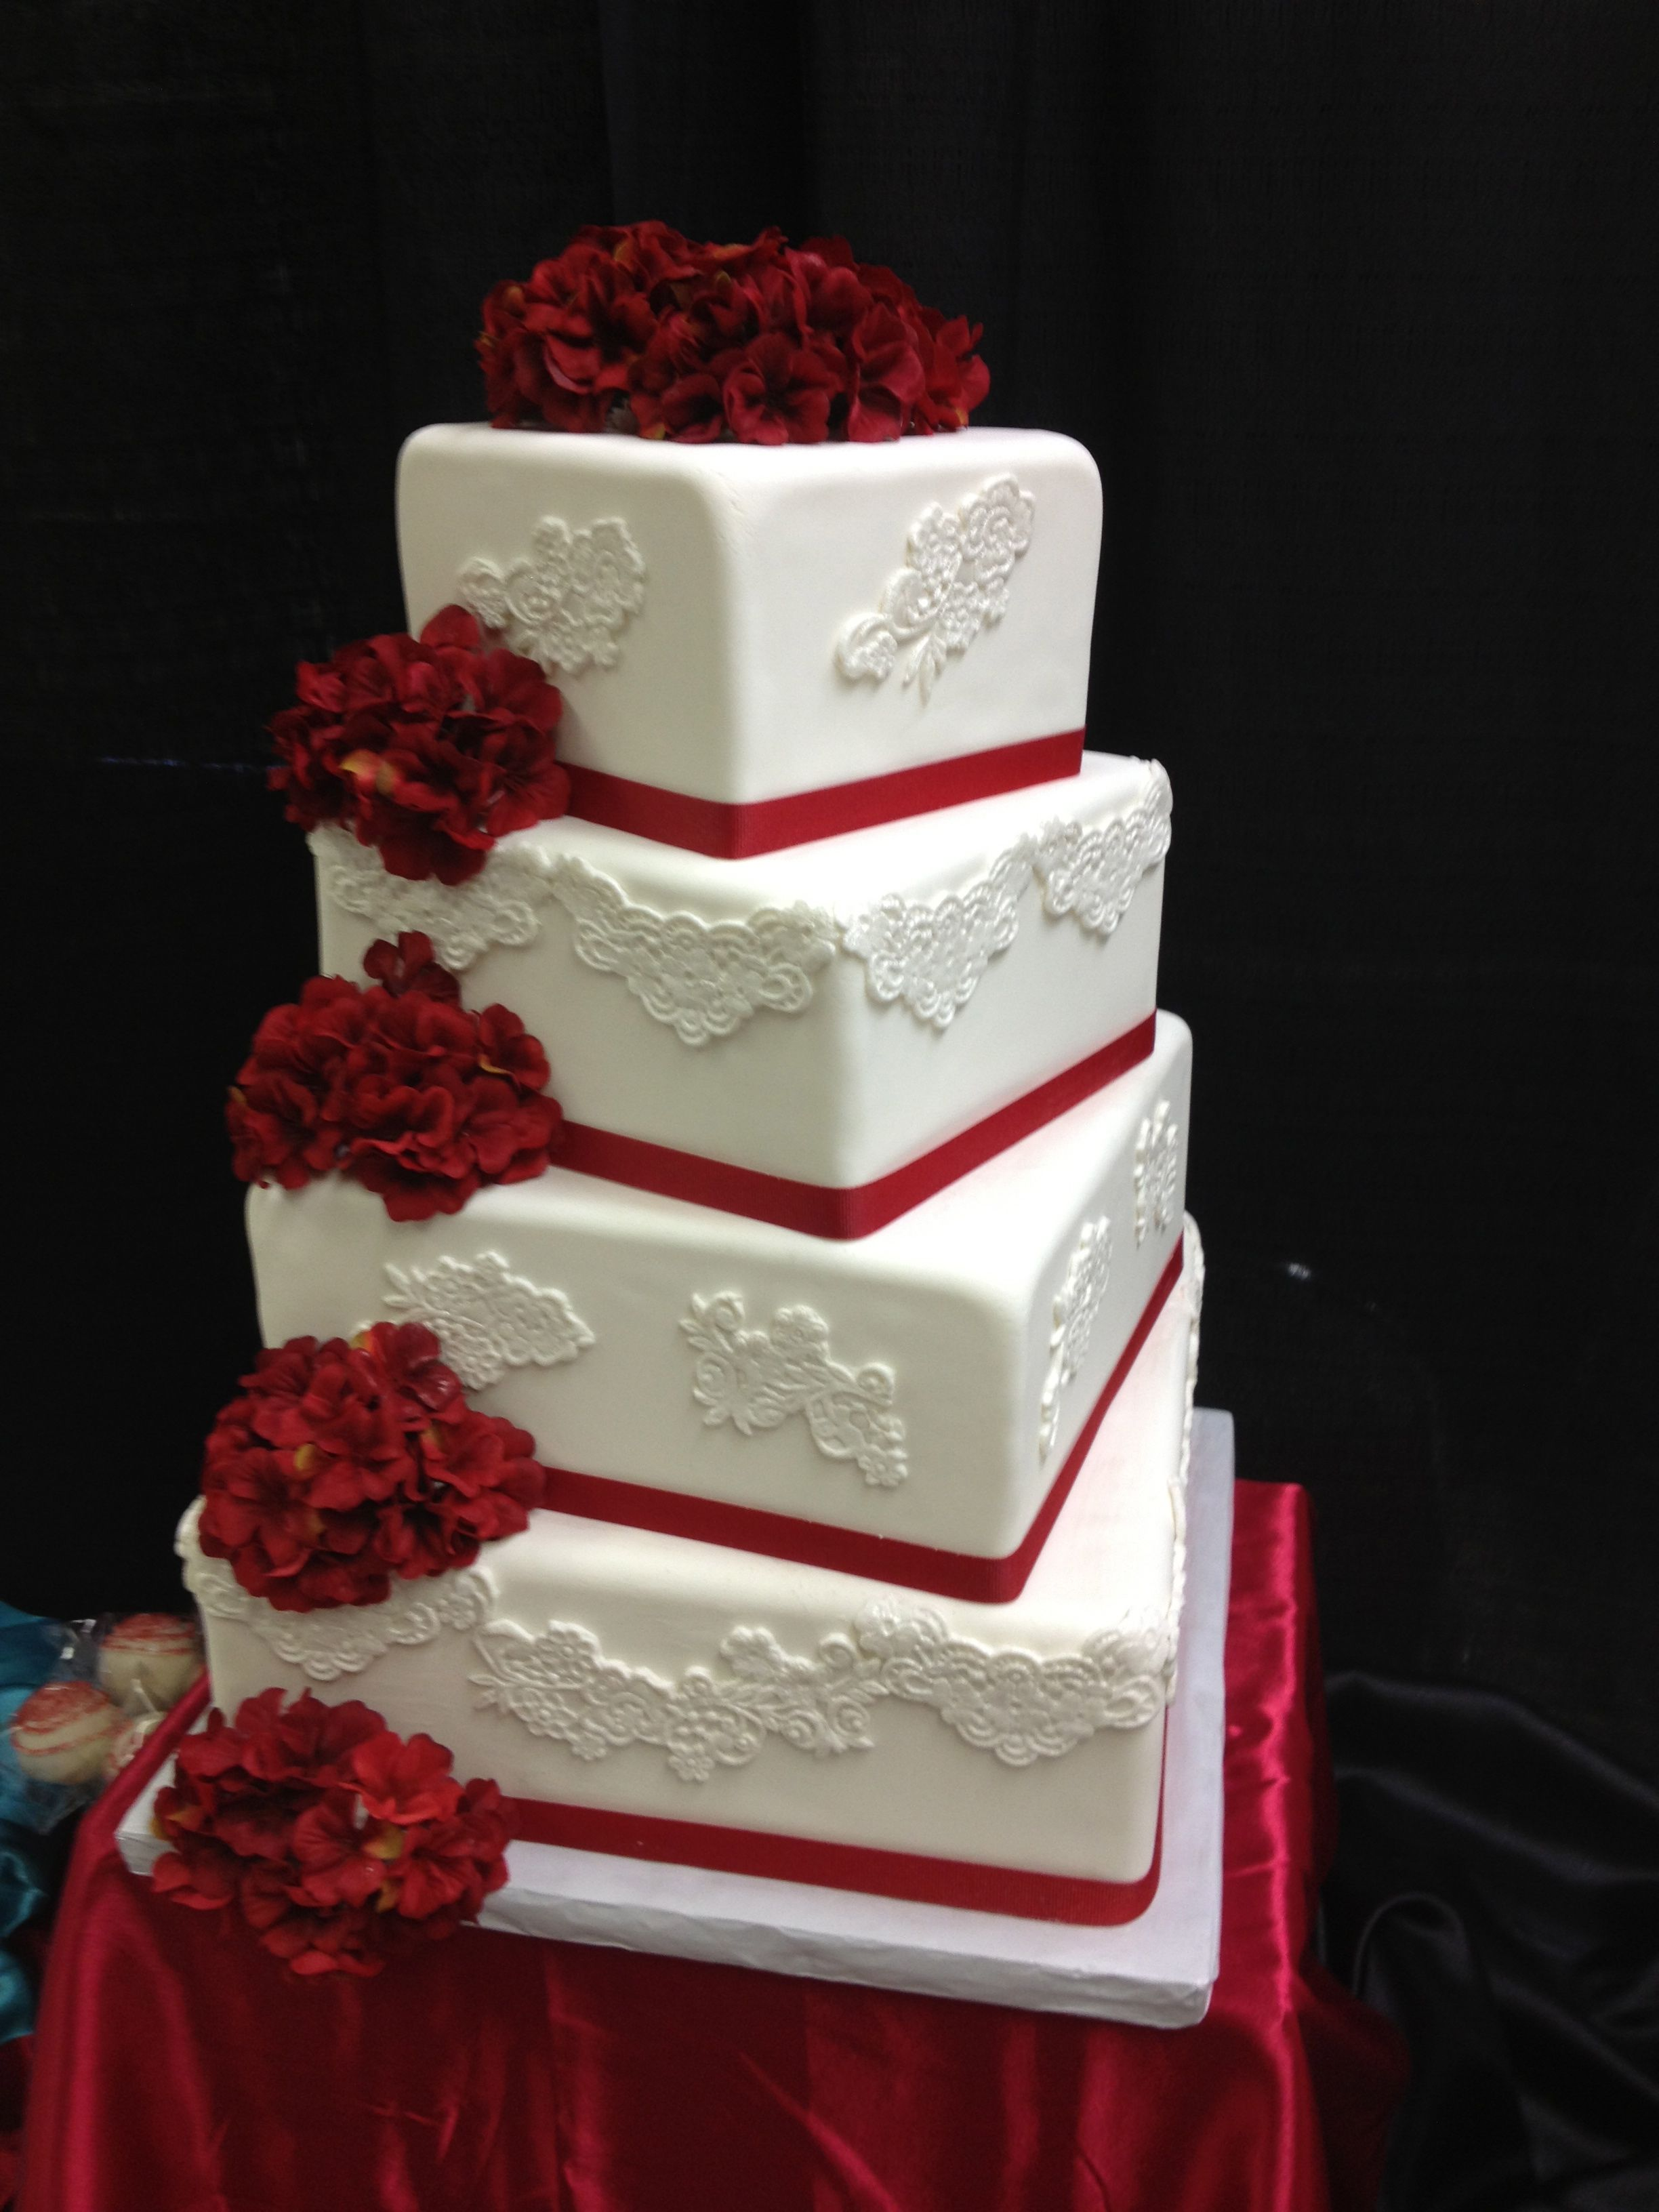 Scuare Cake With Le Red Flowers Cakes So Simple Providing Wedding To Melbourne And